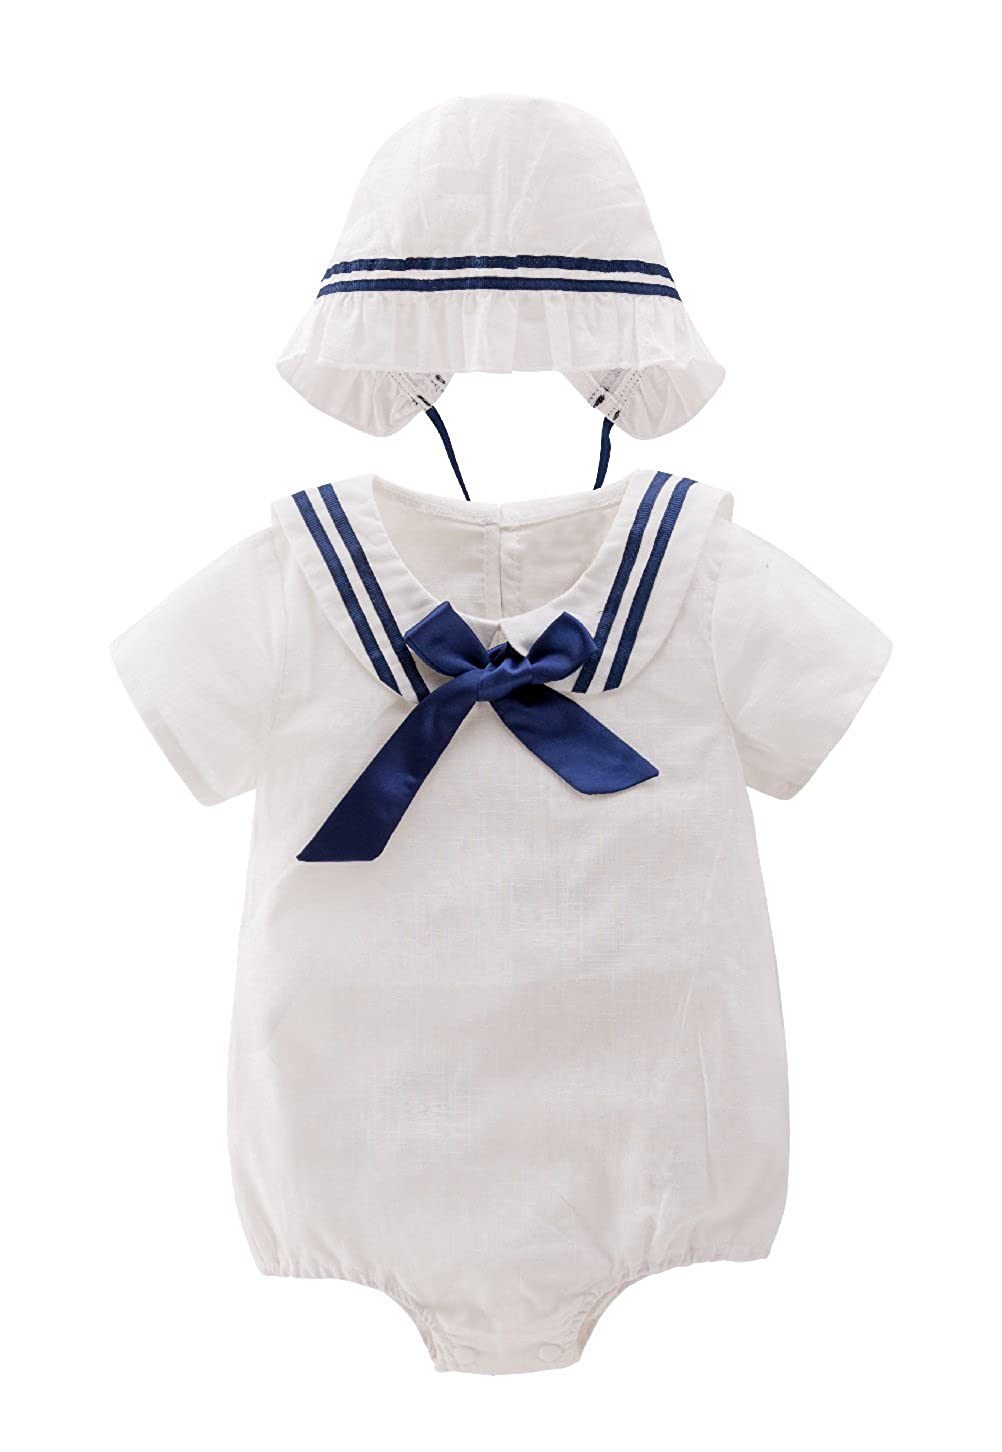 Mays Baby Toddler Girls Romper Jumpsuit Bodysuit Tutu Lace Dress Clothes Outfit with Hat